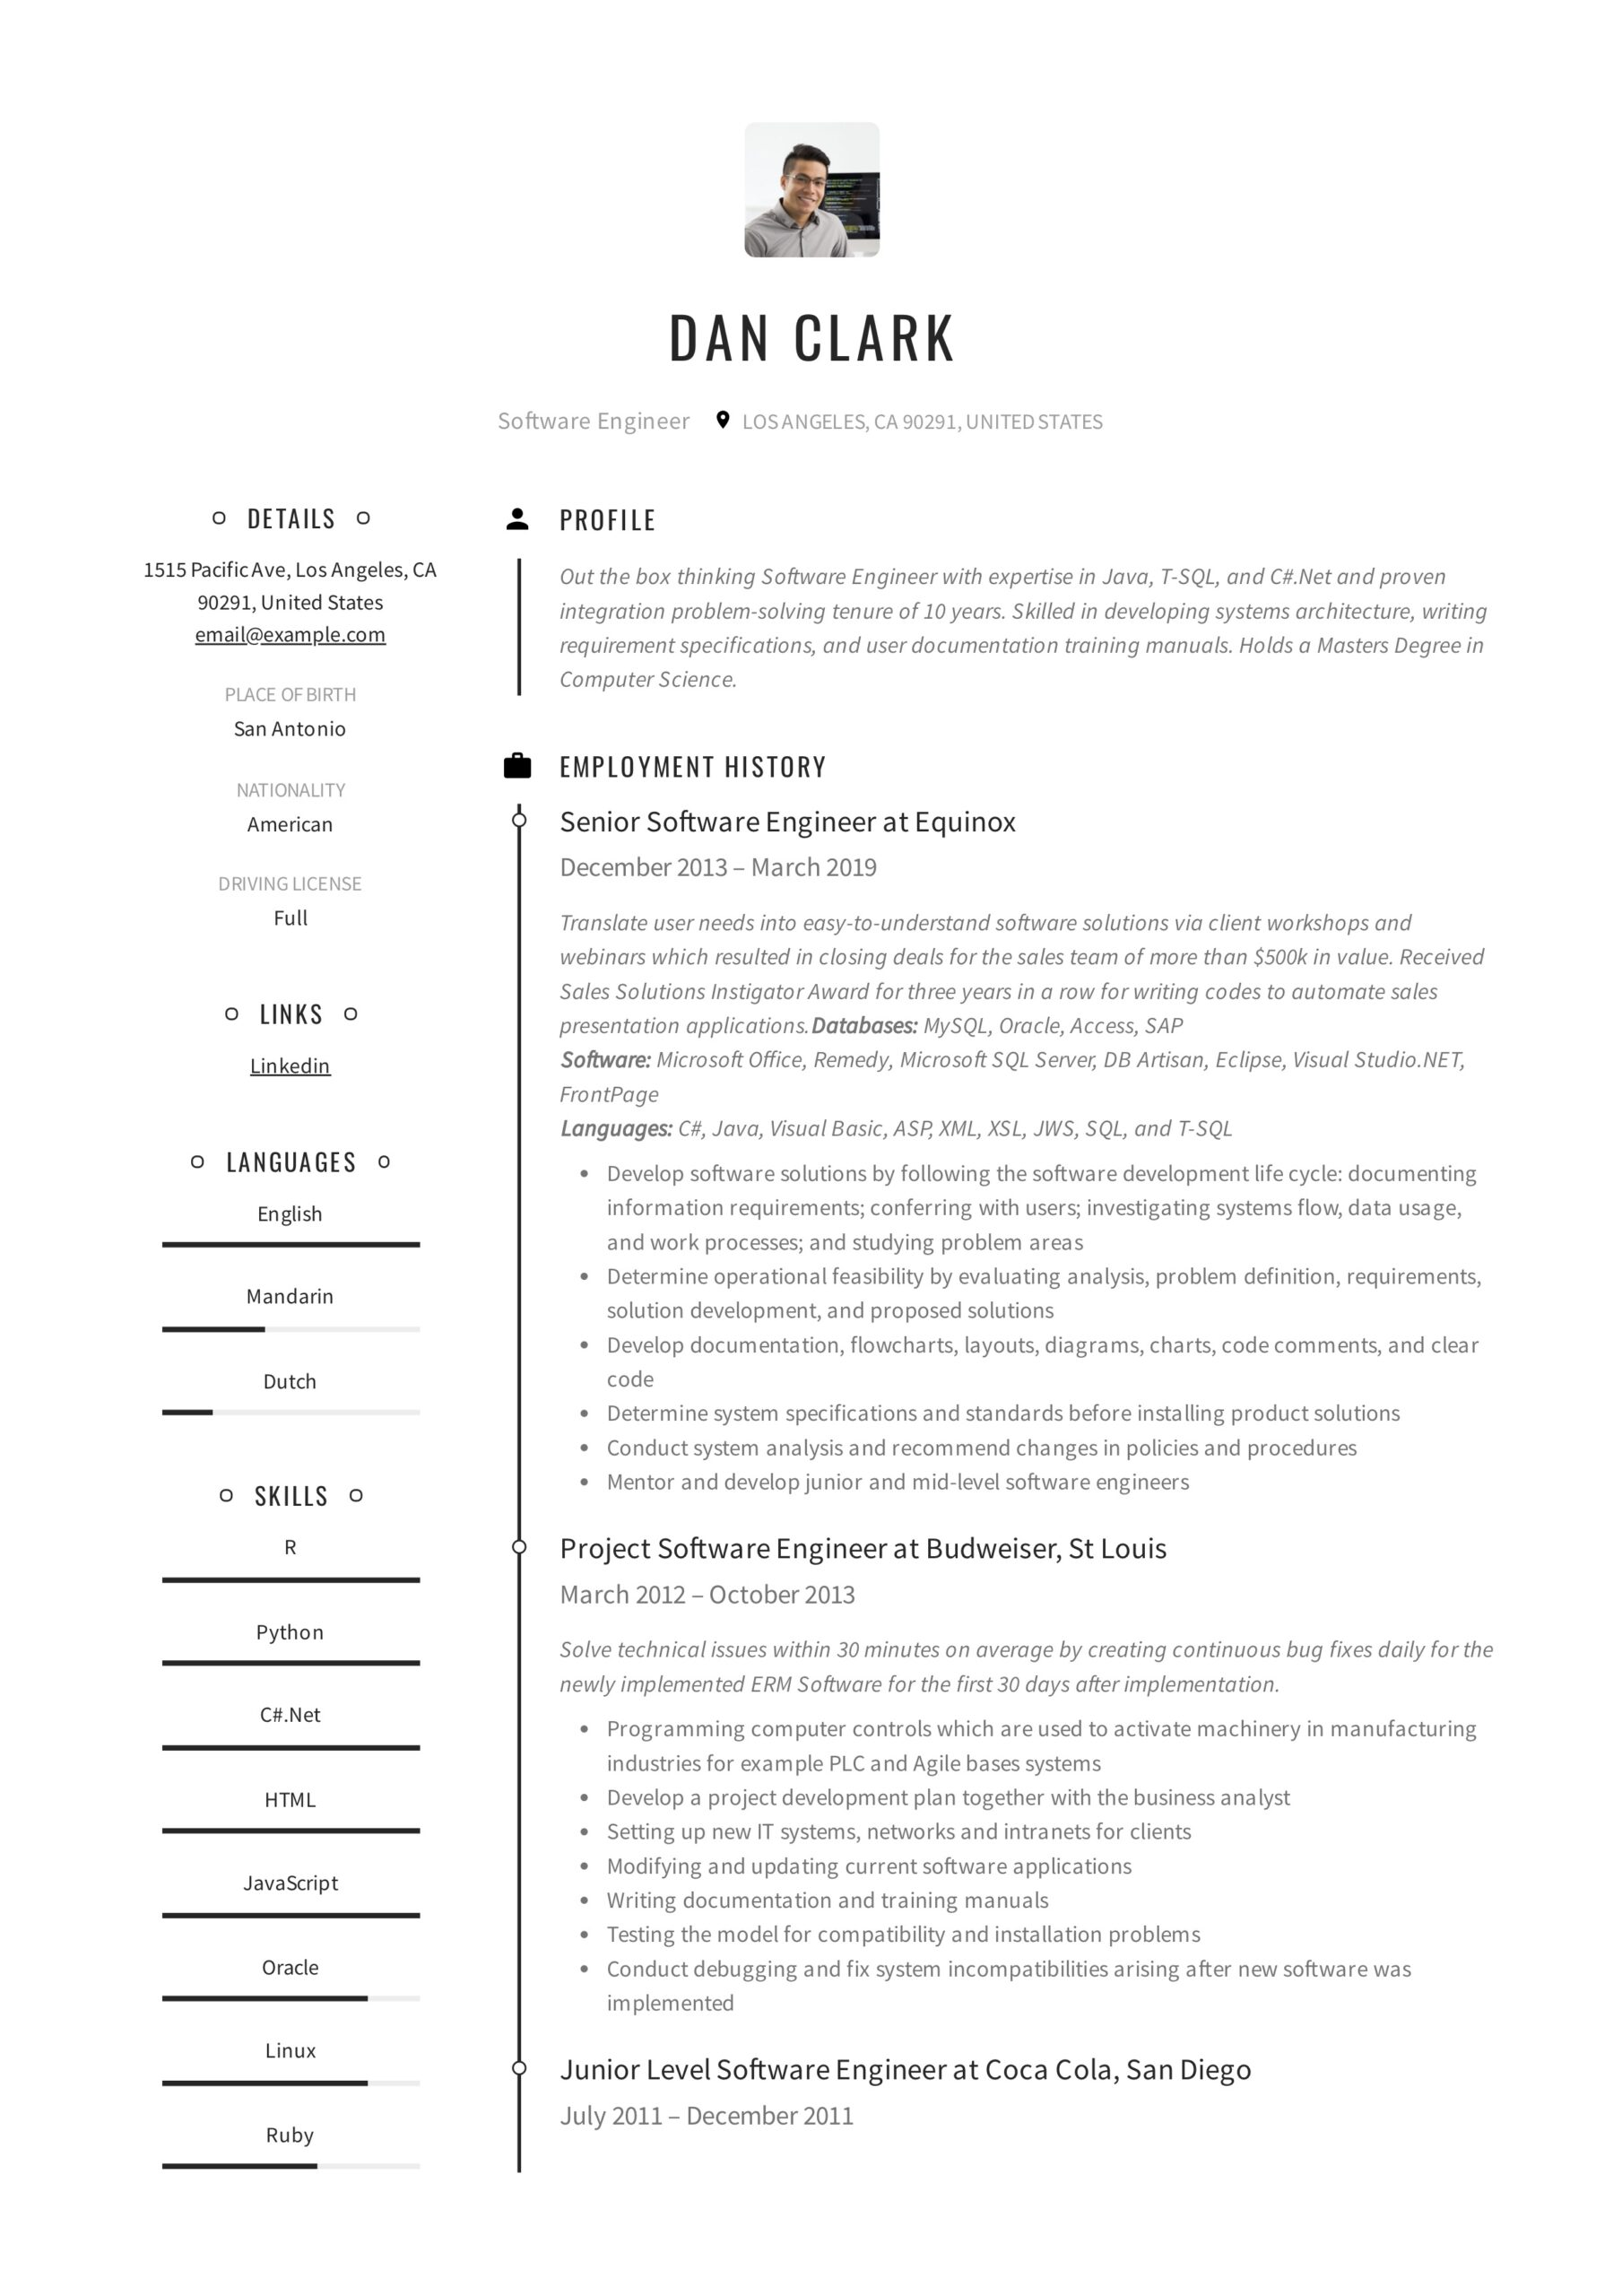 resume templates pdf word free downloads and guides for dan software engineer objective Resume Free Resume Templates For 2020